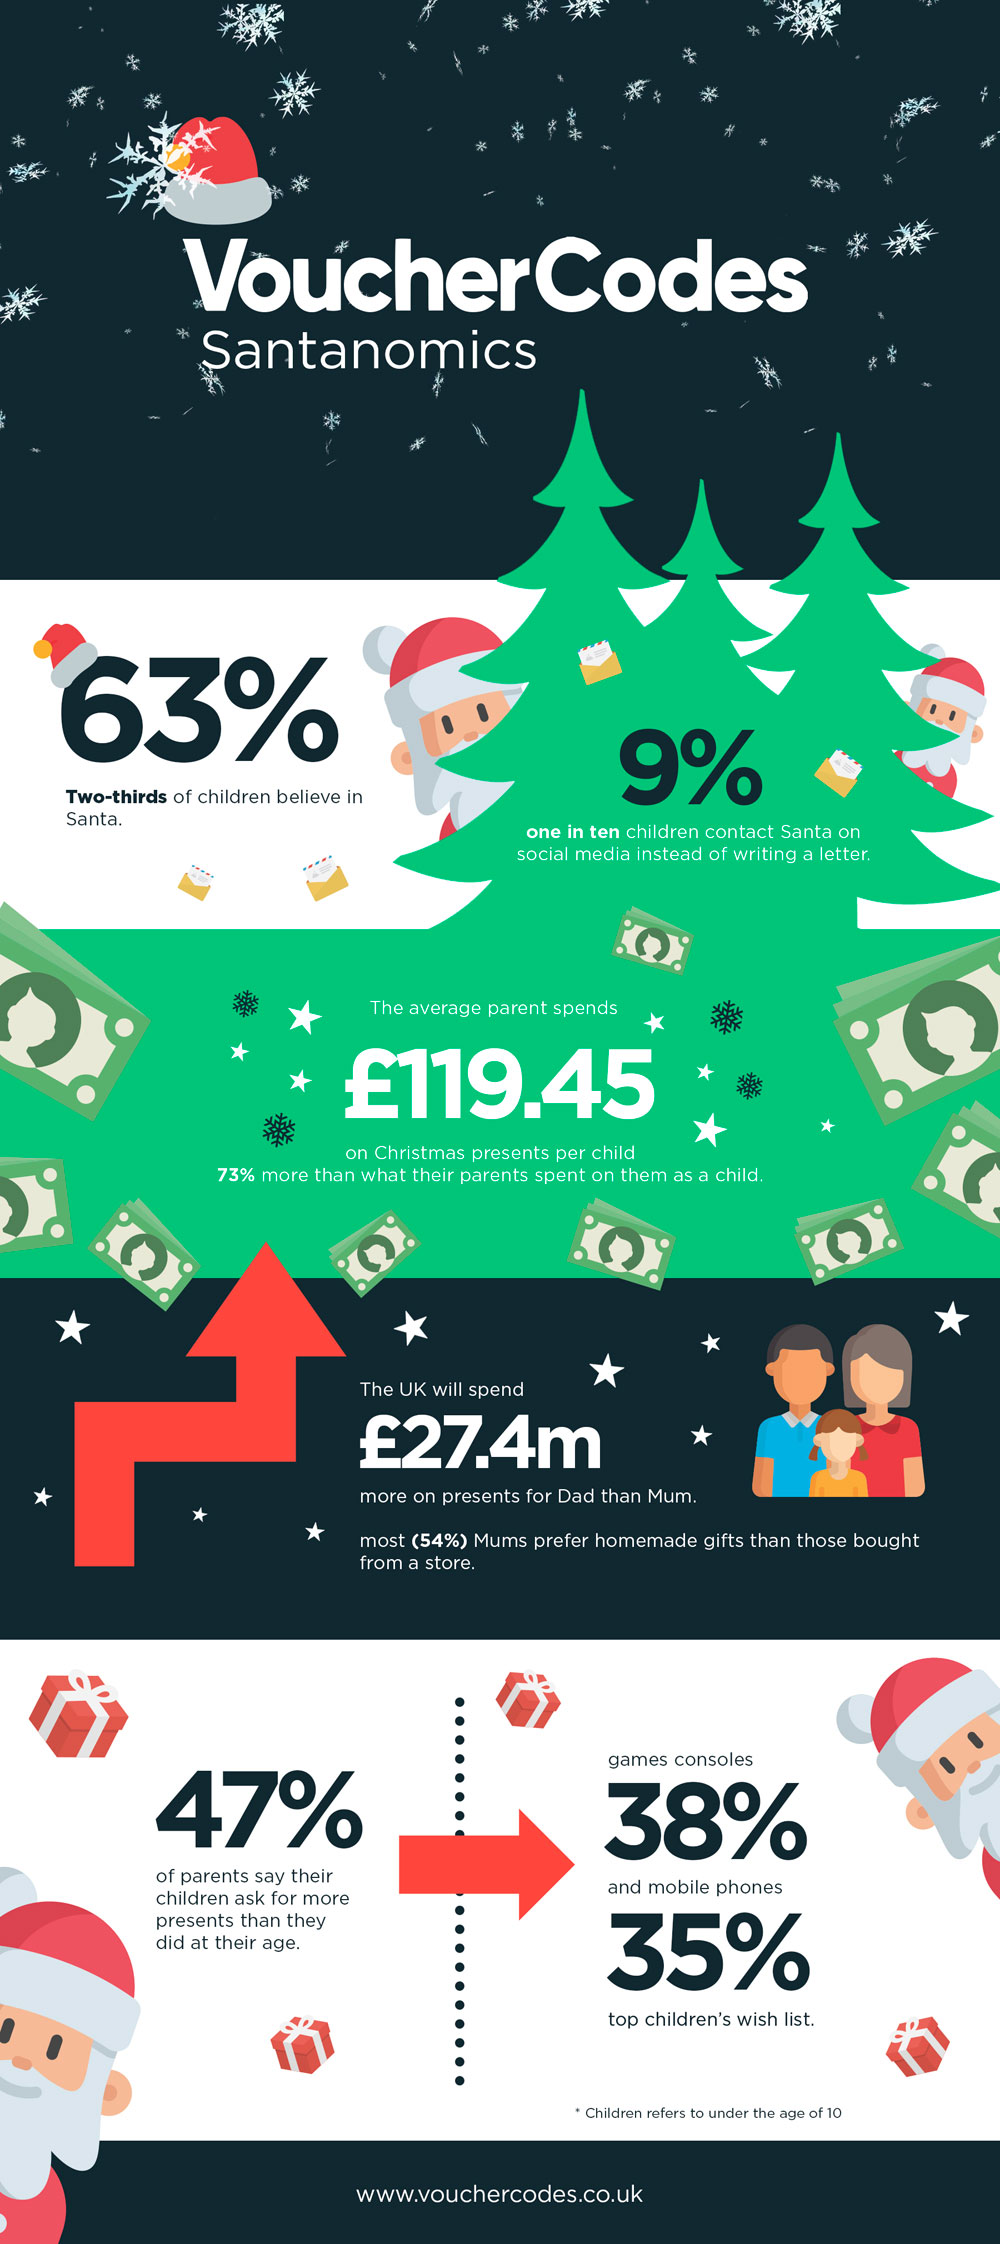 Parents Will Spend £200m More On Children's Presents Than A Generation Ago 2